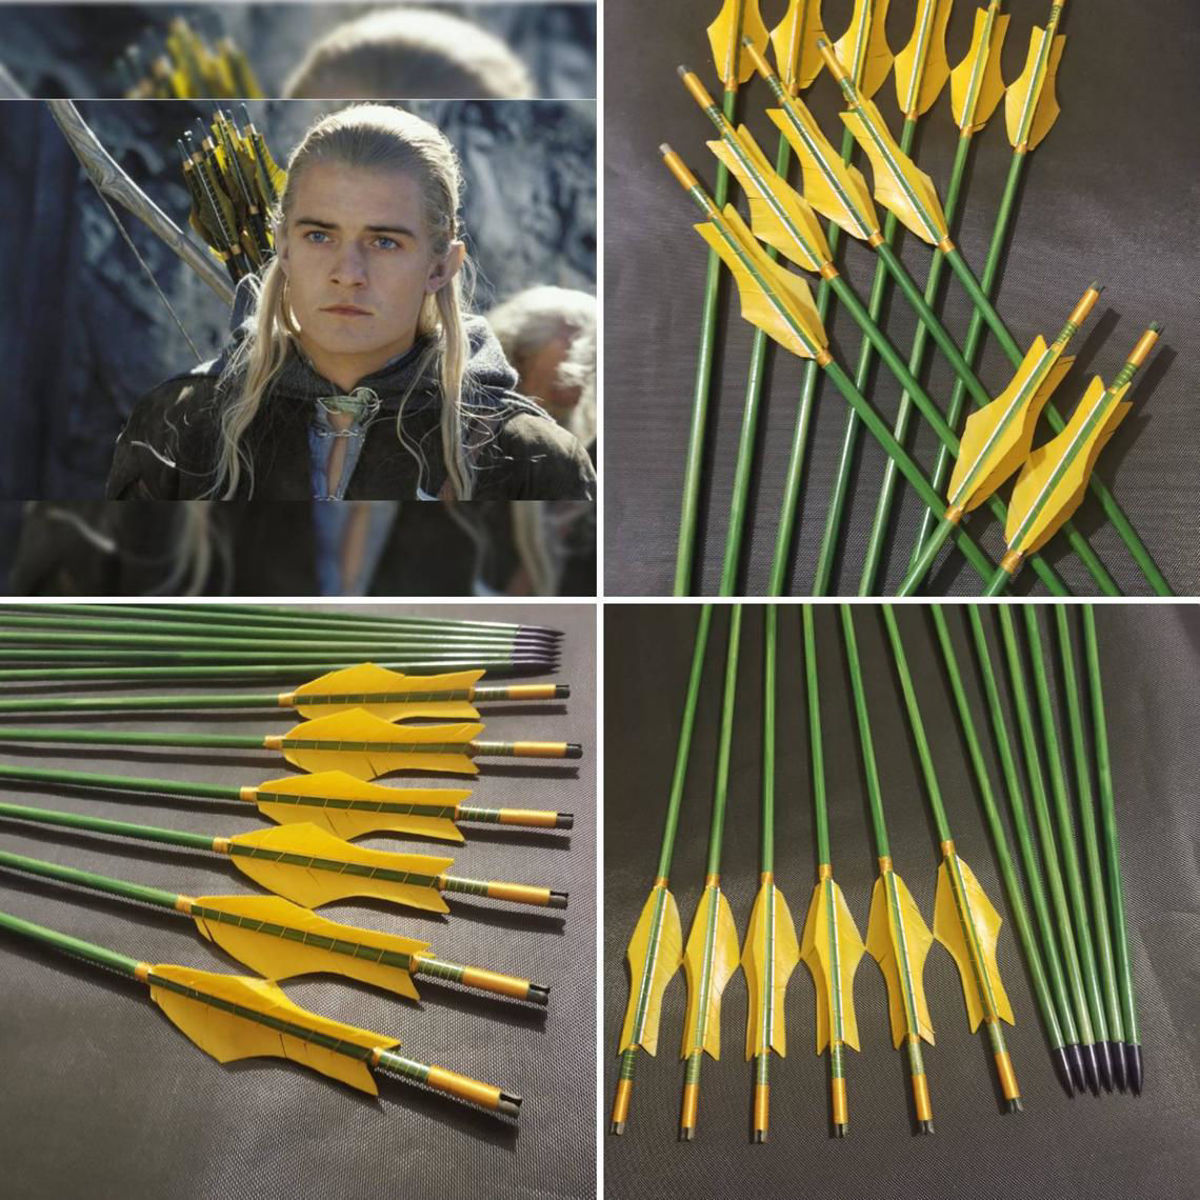 Lord Of The Rings Legolas Arrow Pine Wooden Arrow for Archery  And Cosplay. ürün görseli